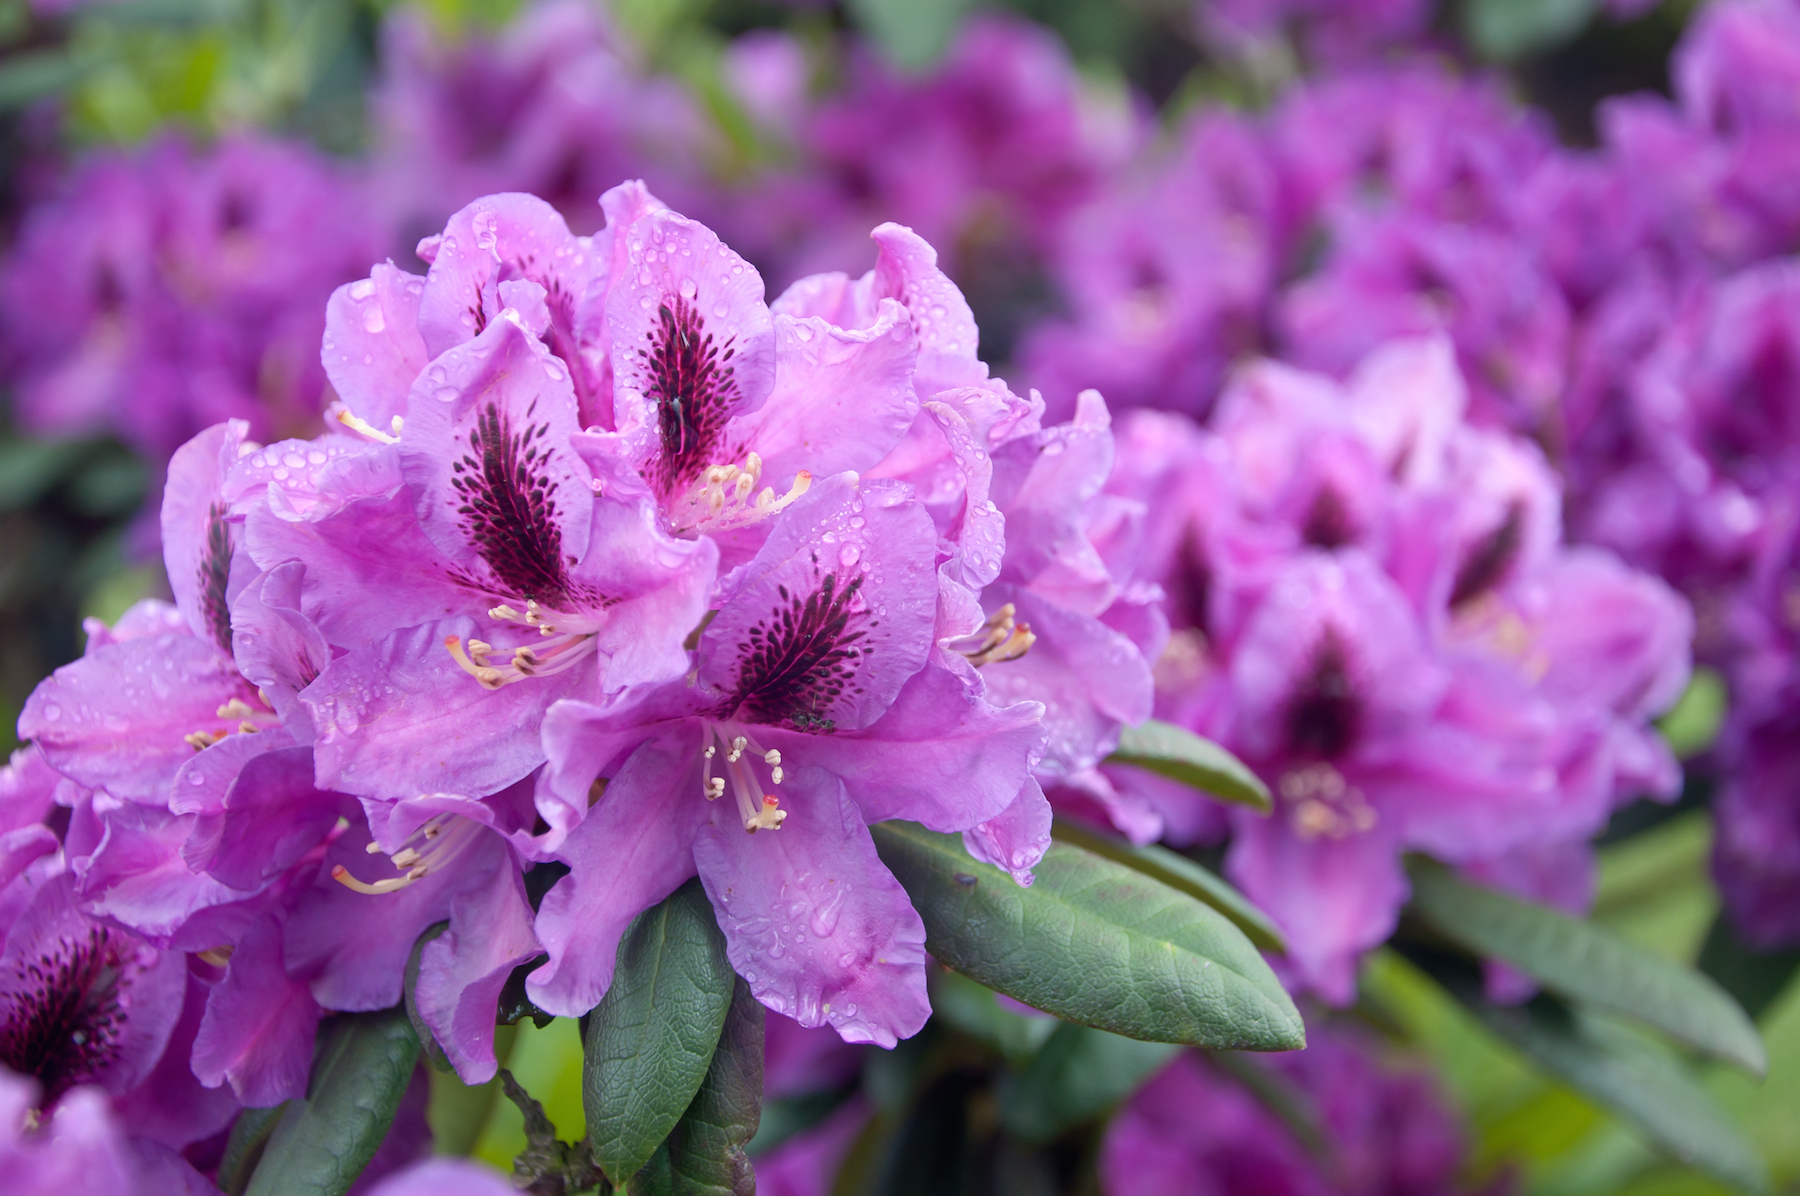 Plant pick for march rhododendron sloat garden center for How to care for rhododendrons after blooming